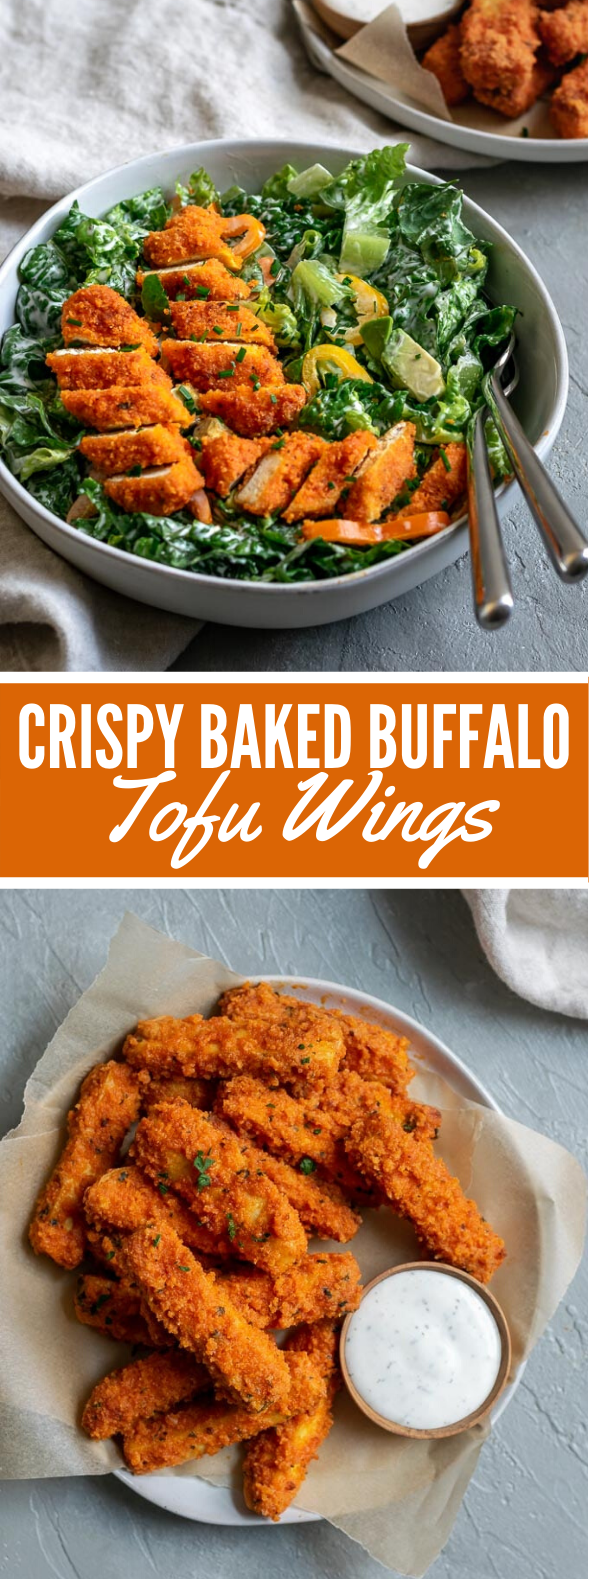 CRISPY BAKED BUFFALO TOFU WINGS #vegetarian #appetizers